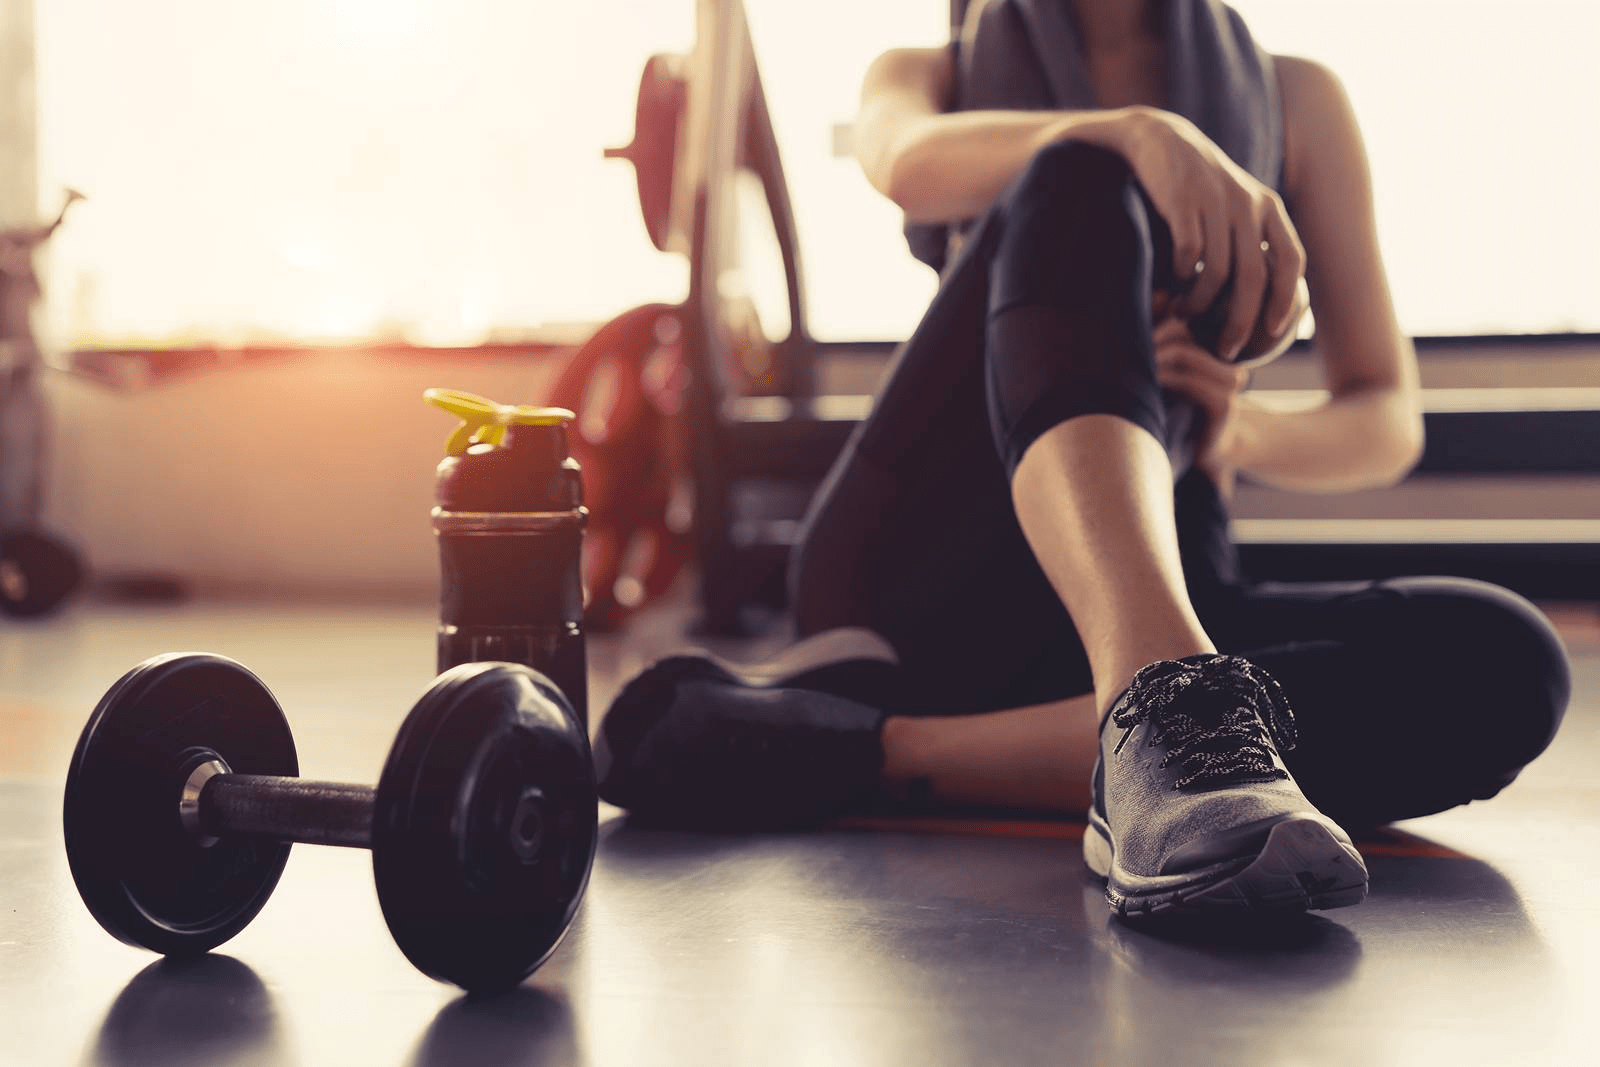 BodyGym Review 2021